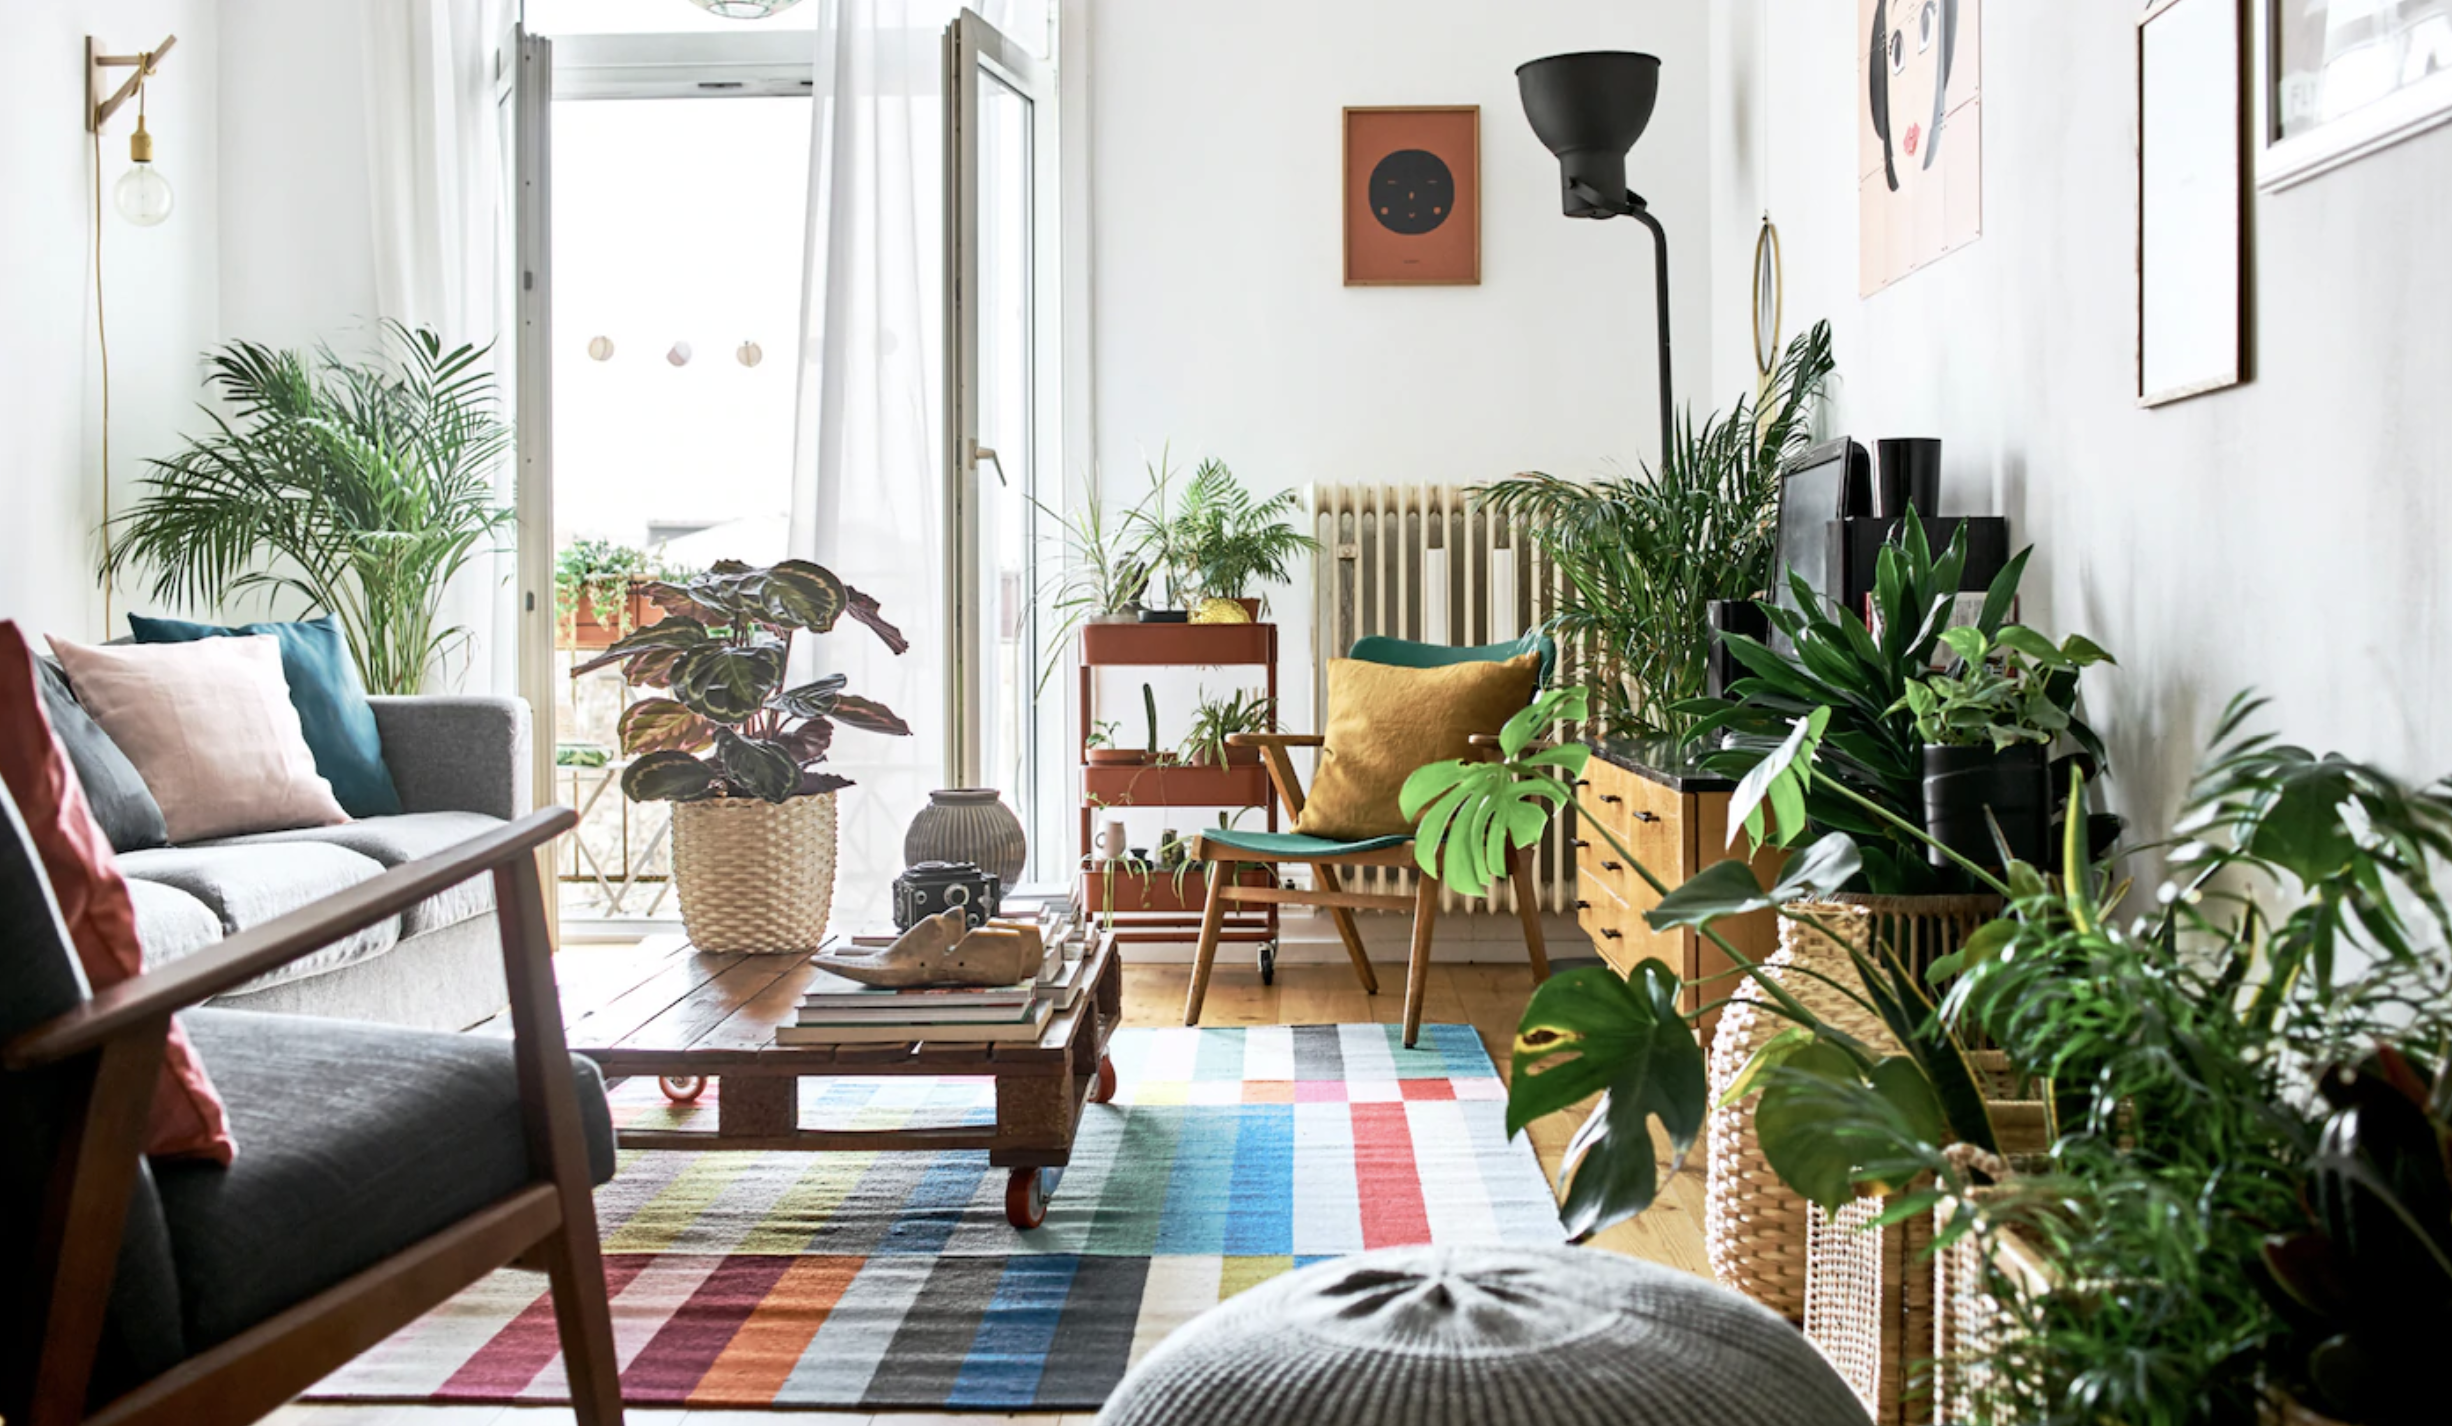 Living room ideas on a budget: fresh style at little to no money